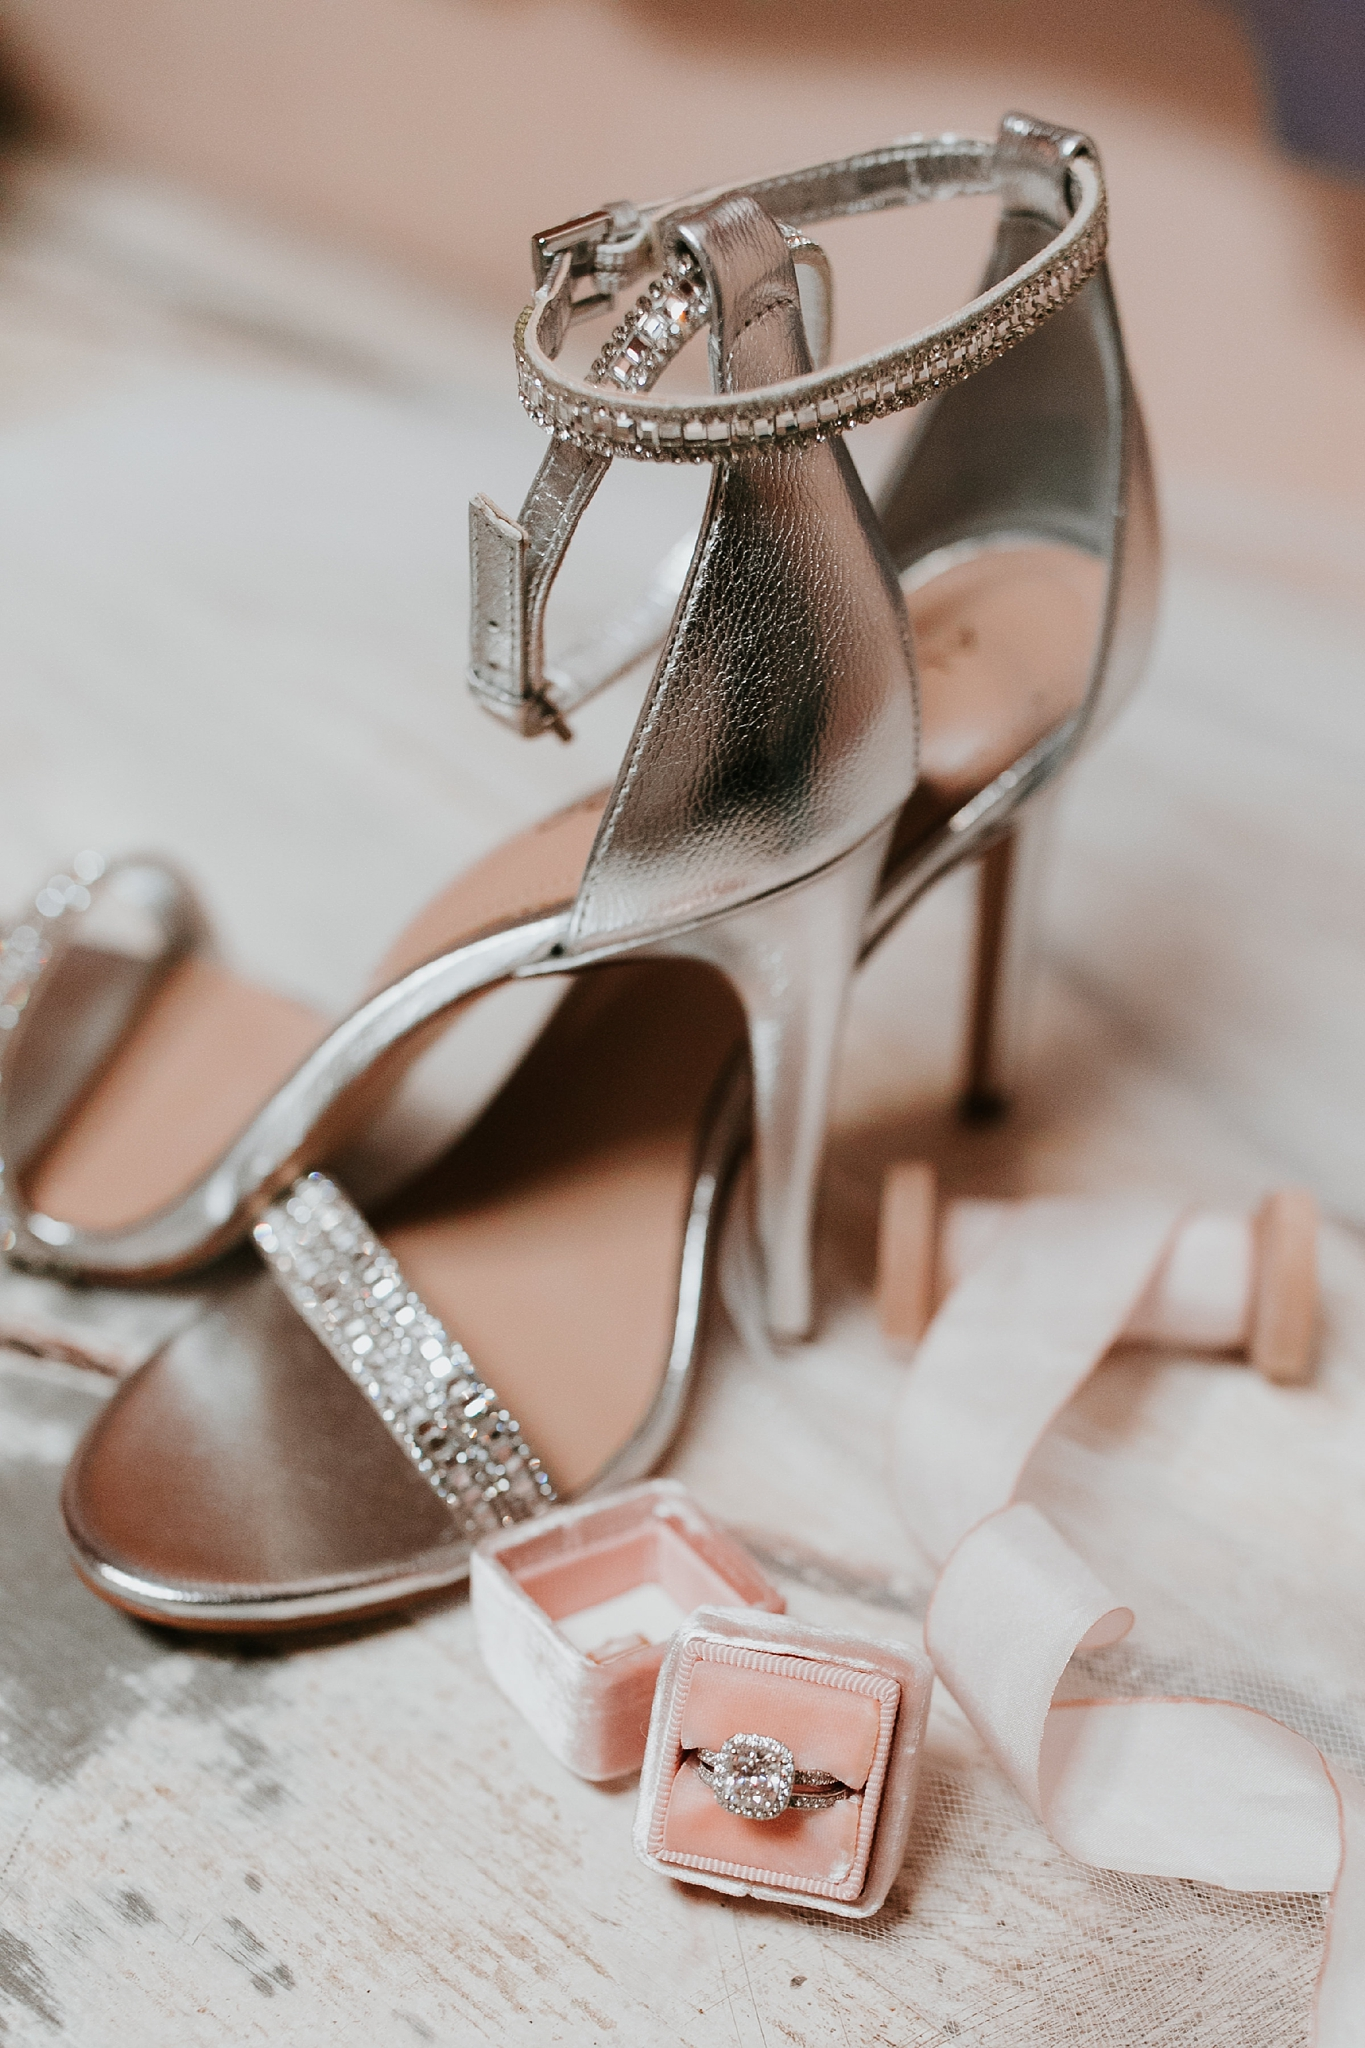 Alicia+lucia+photography+-+albuquerque+wedding+photographer+-+santa+fe+wedding+photography+-+new+mexico+wedding+photographer+-+new+mexico+wedding+-+new+mexico+wedding+-+colorado+wedding+-+bridal+shoes+-+bridal+inspo_0050.jpg